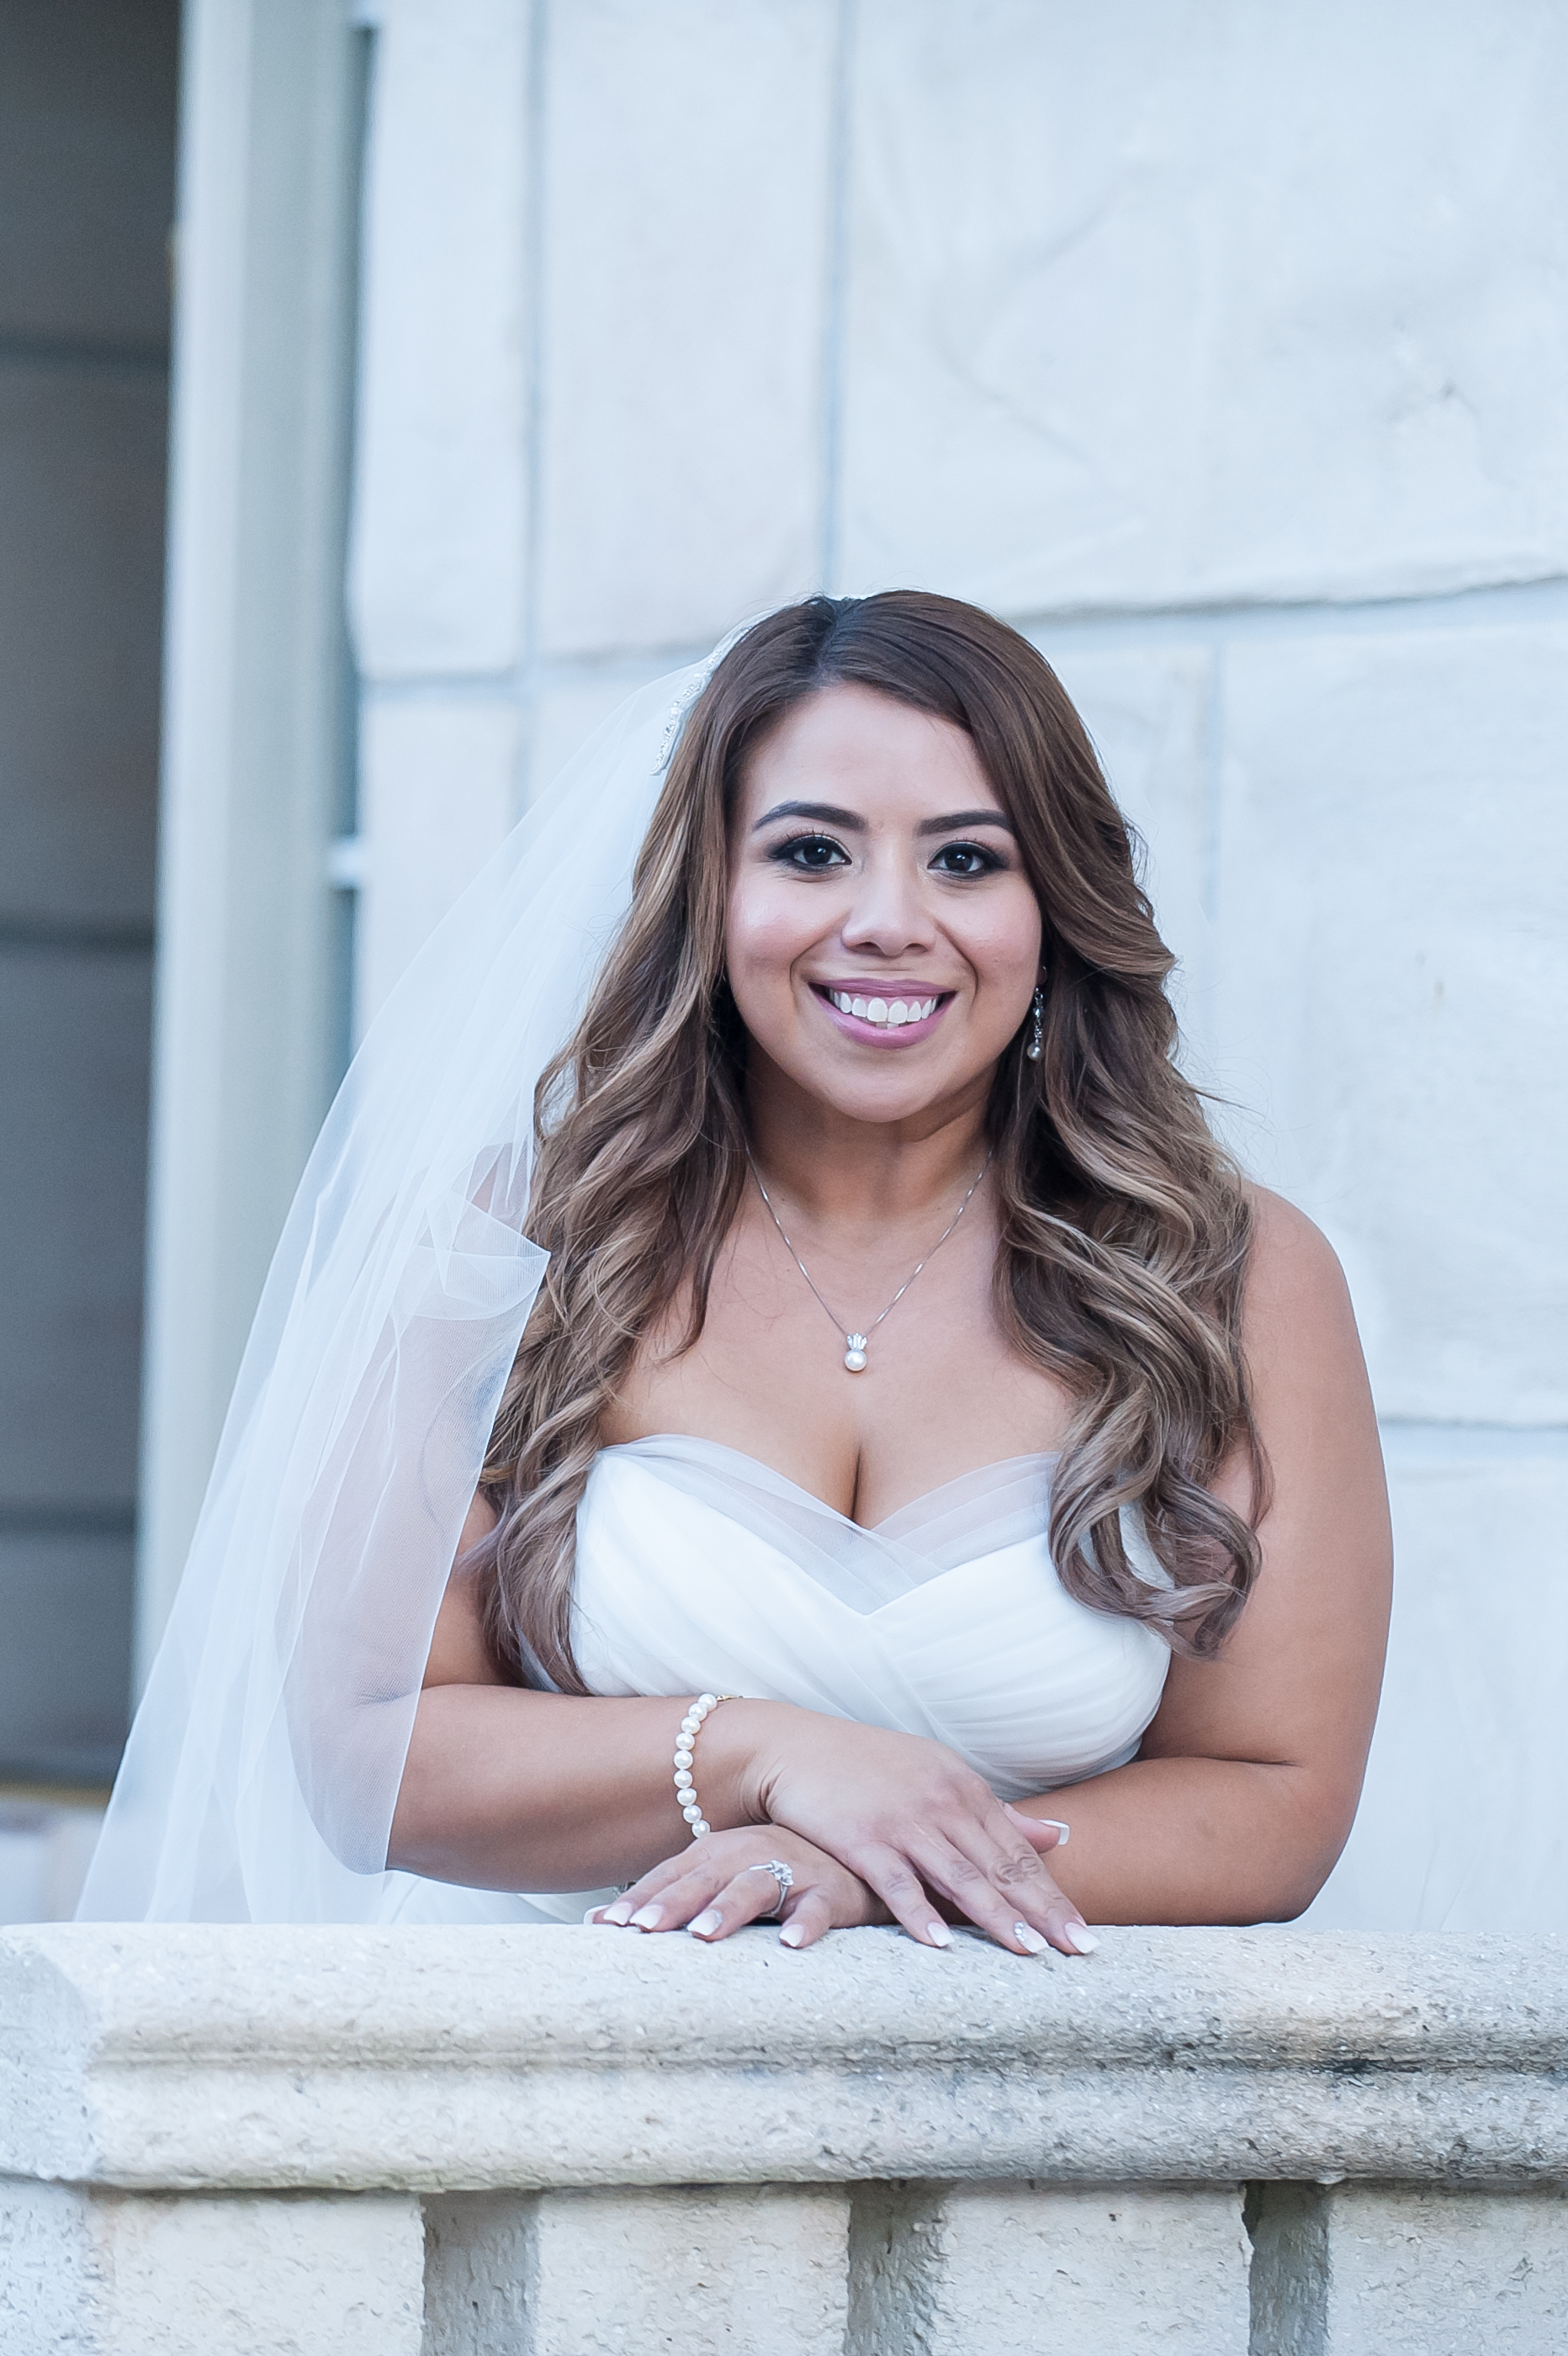 I just love working with the girls from Bombshell Makeovers, they always do an incredible job. Visit their website at www.bombshellmakeovers.com 561-319-2969  Let them know Yolanda Hill Photography sent you !